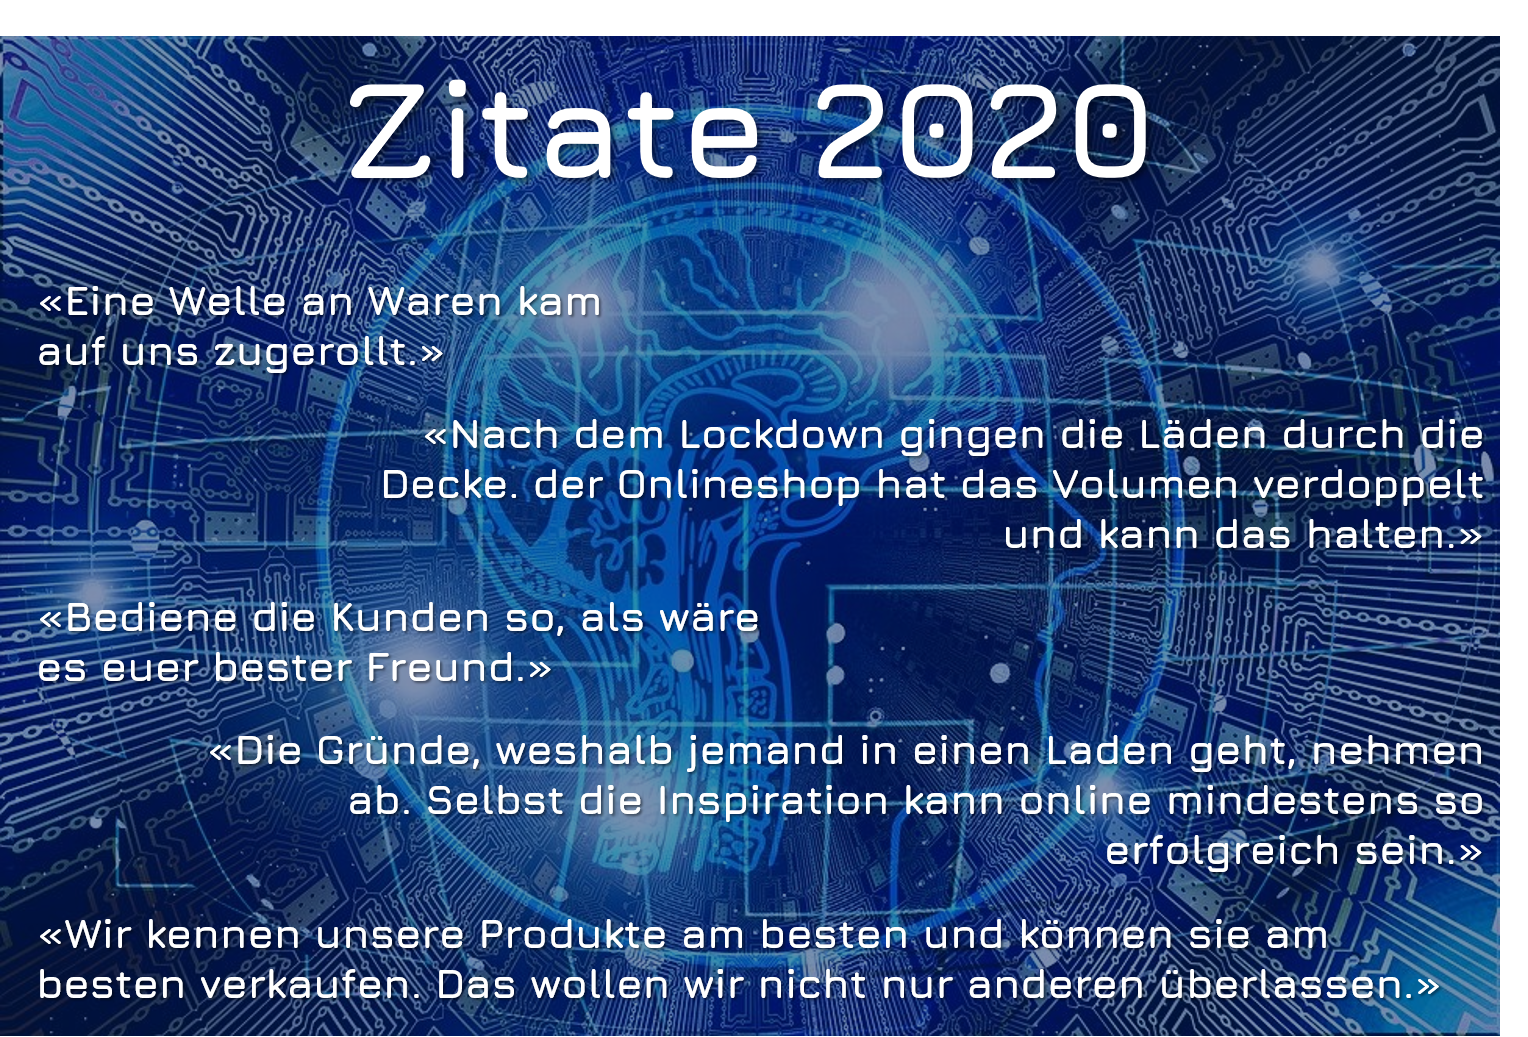 Digital Commerce 2020 Zitate